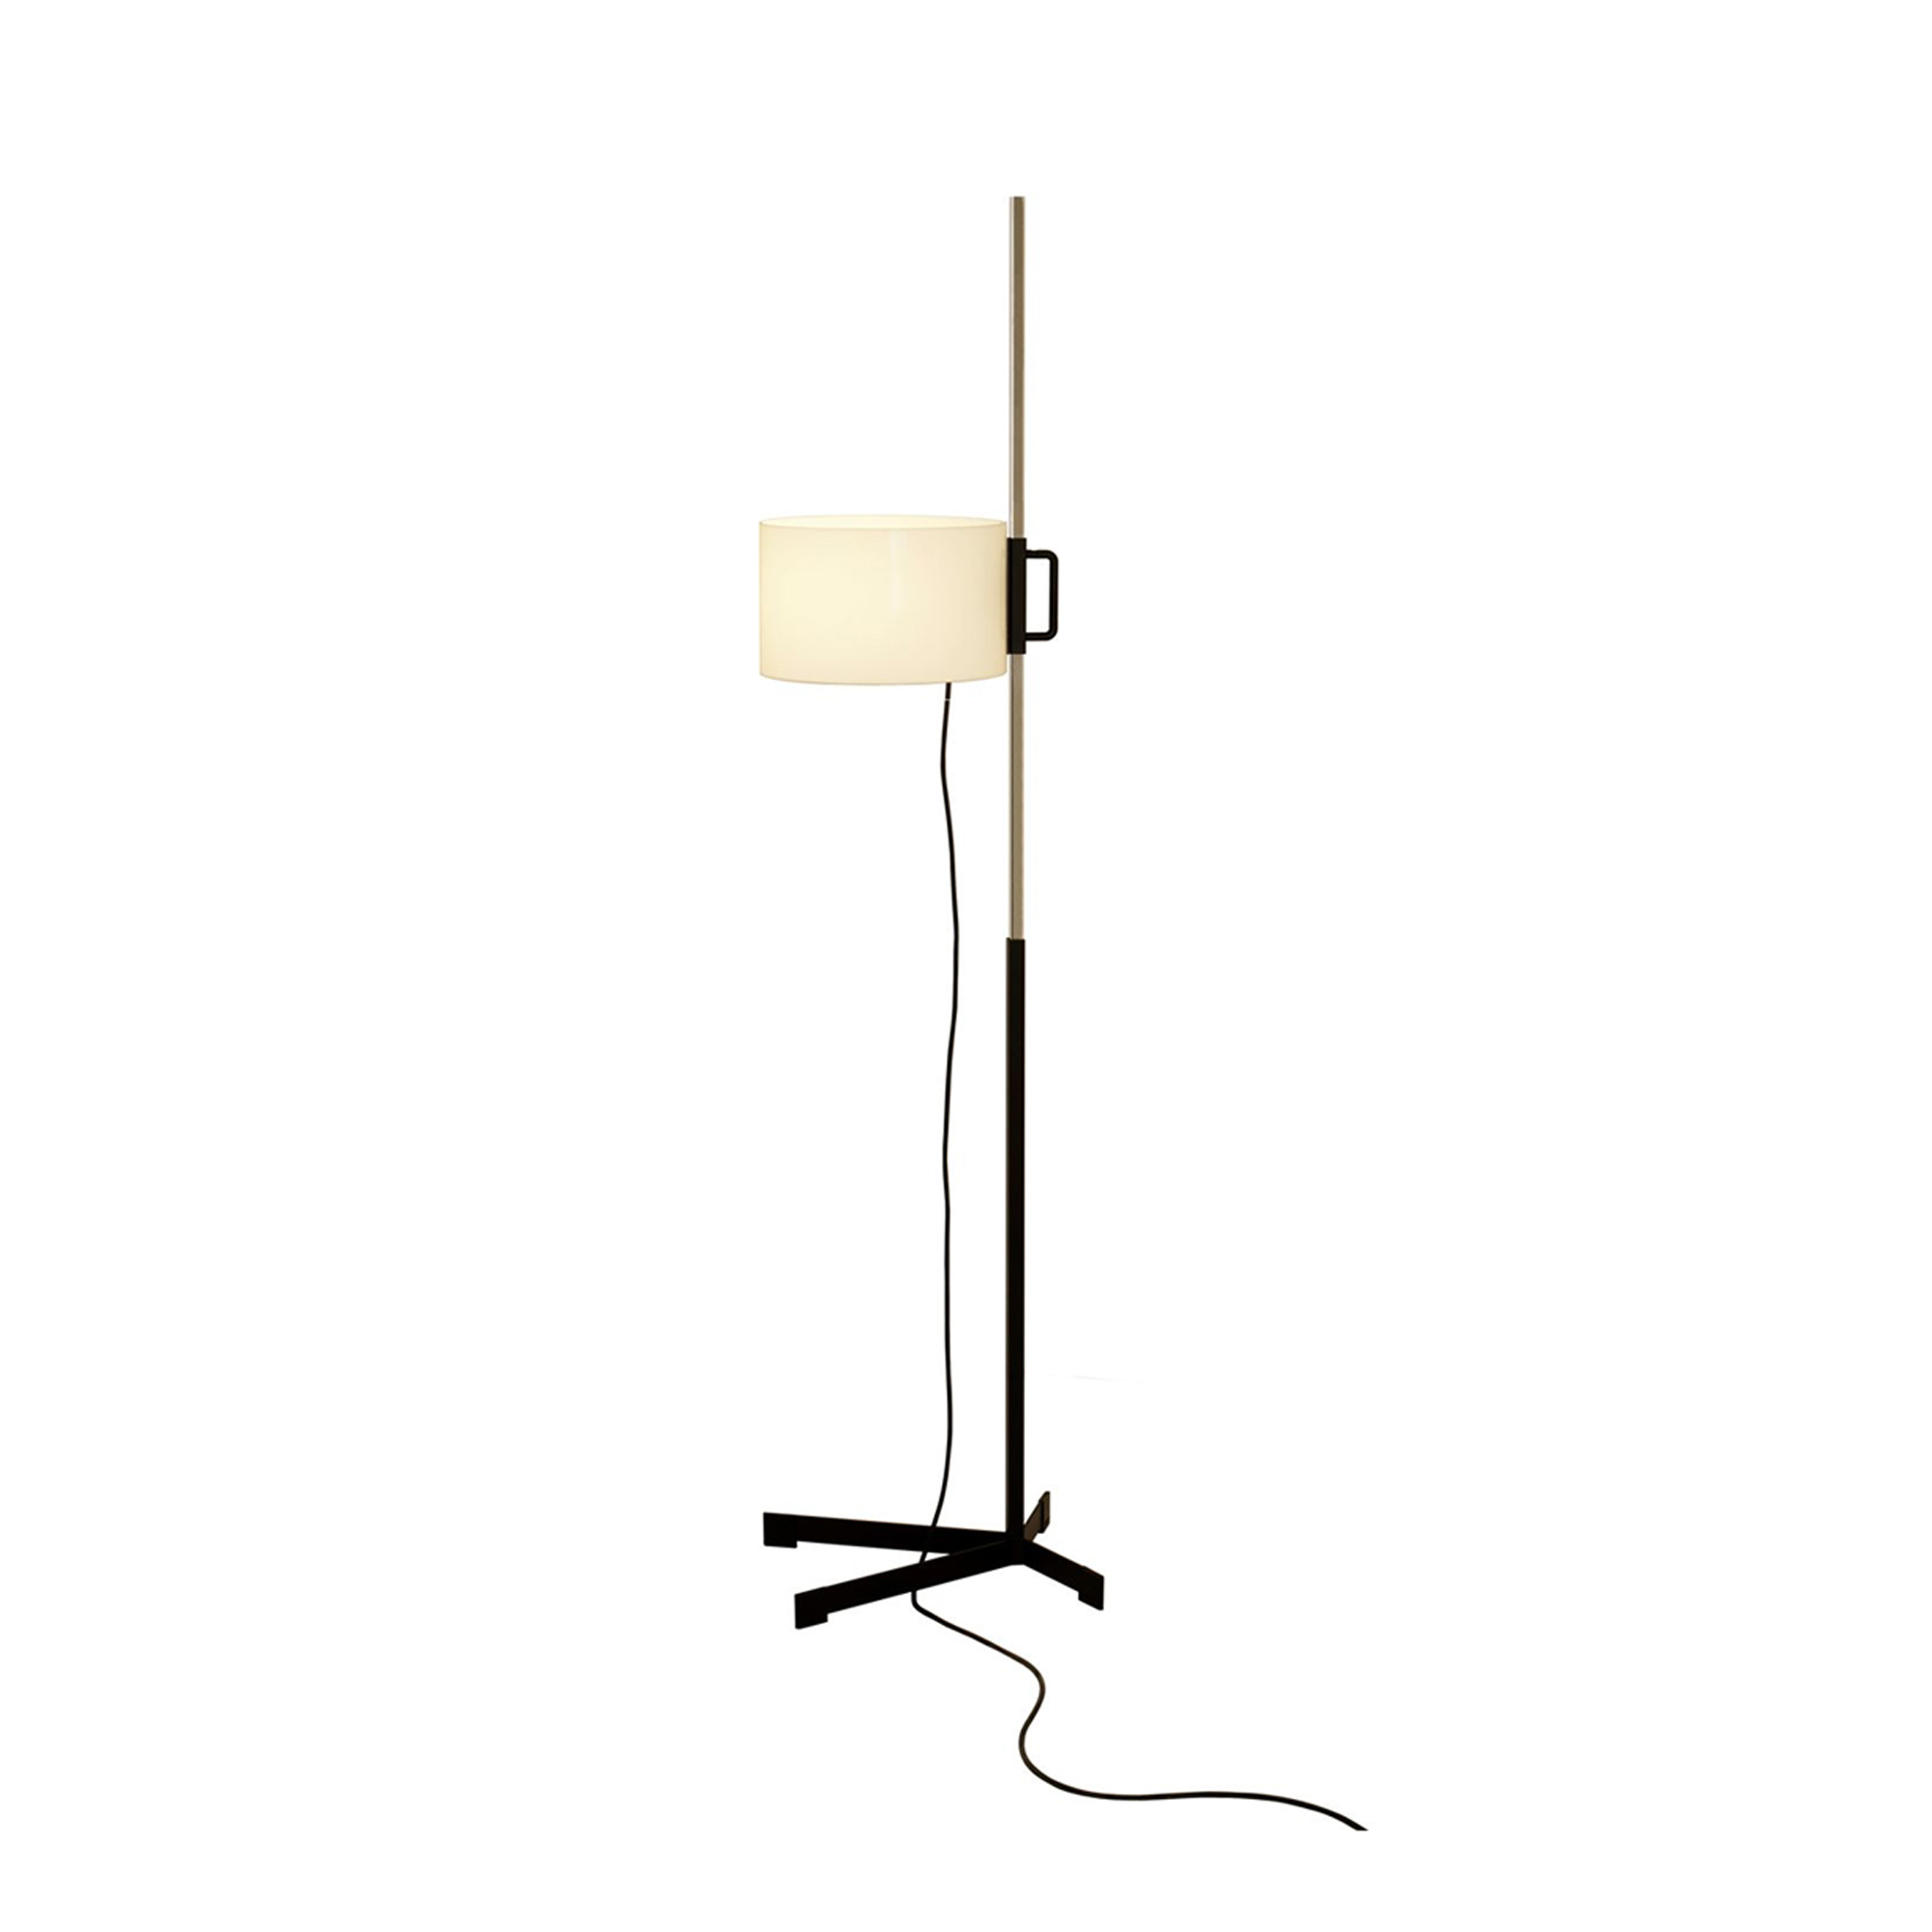 TMC Floor Lamp - <p>To mark the iconic design's 50th anniversary, Santa &amp; Cole released in 2011 the last and definitive edition of the TMC lamp, according to its author. The current version revives a number of details of the lamp's productive life, such as the methacrylate's thickness and quality used for the shade, and its circular shape. It also incorporates new improvements to the up-down shade system; the upper shaft is a smooth, continuous piece that can be adjusted using a magnet. An unbeatable masterpiece.</p>  | Matter of Stuff